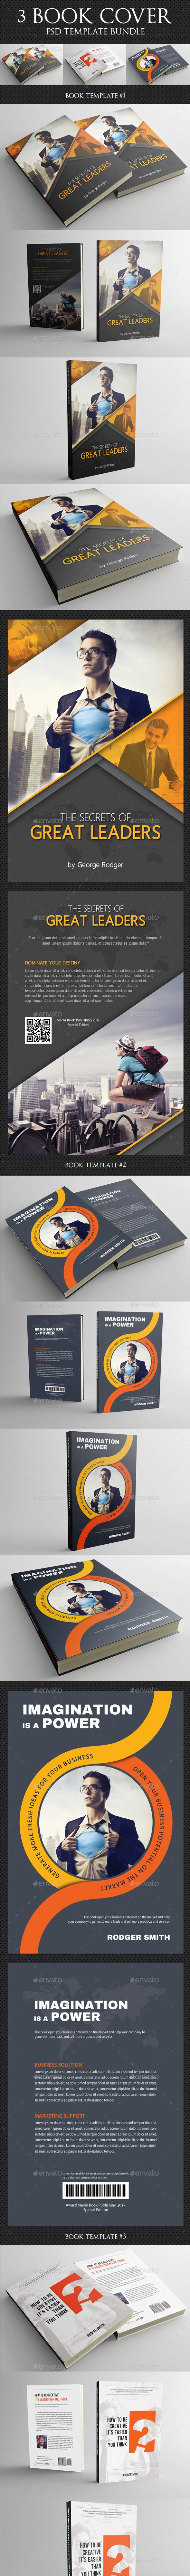 3 Corporate Book Cover Template Bundle V3 By Rapidgraf Graphicriver